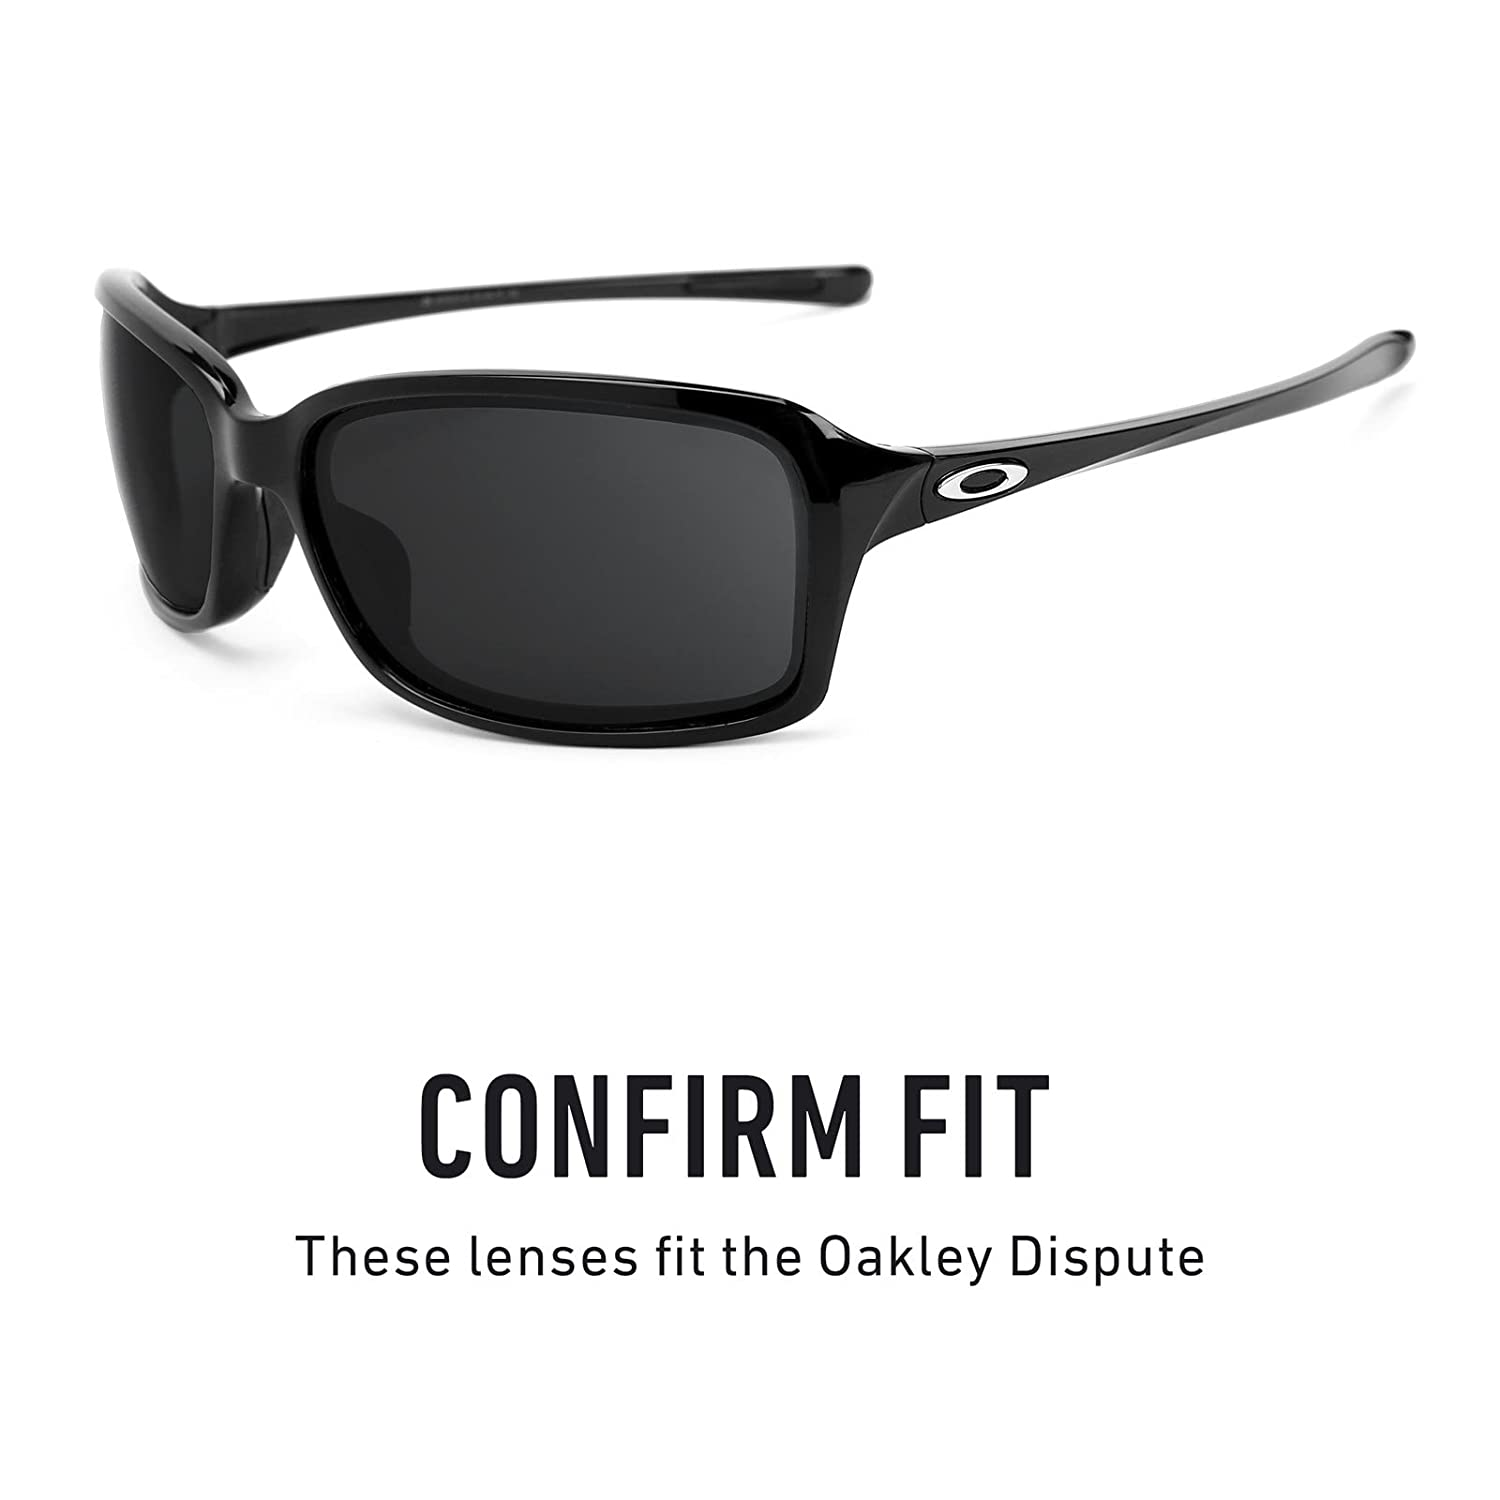 67a6f55cb6fce Revant Polarized Replacement Lenses for Oakley Dispute Black Chrome  MirrorShield at Amazon Men s Clothing store